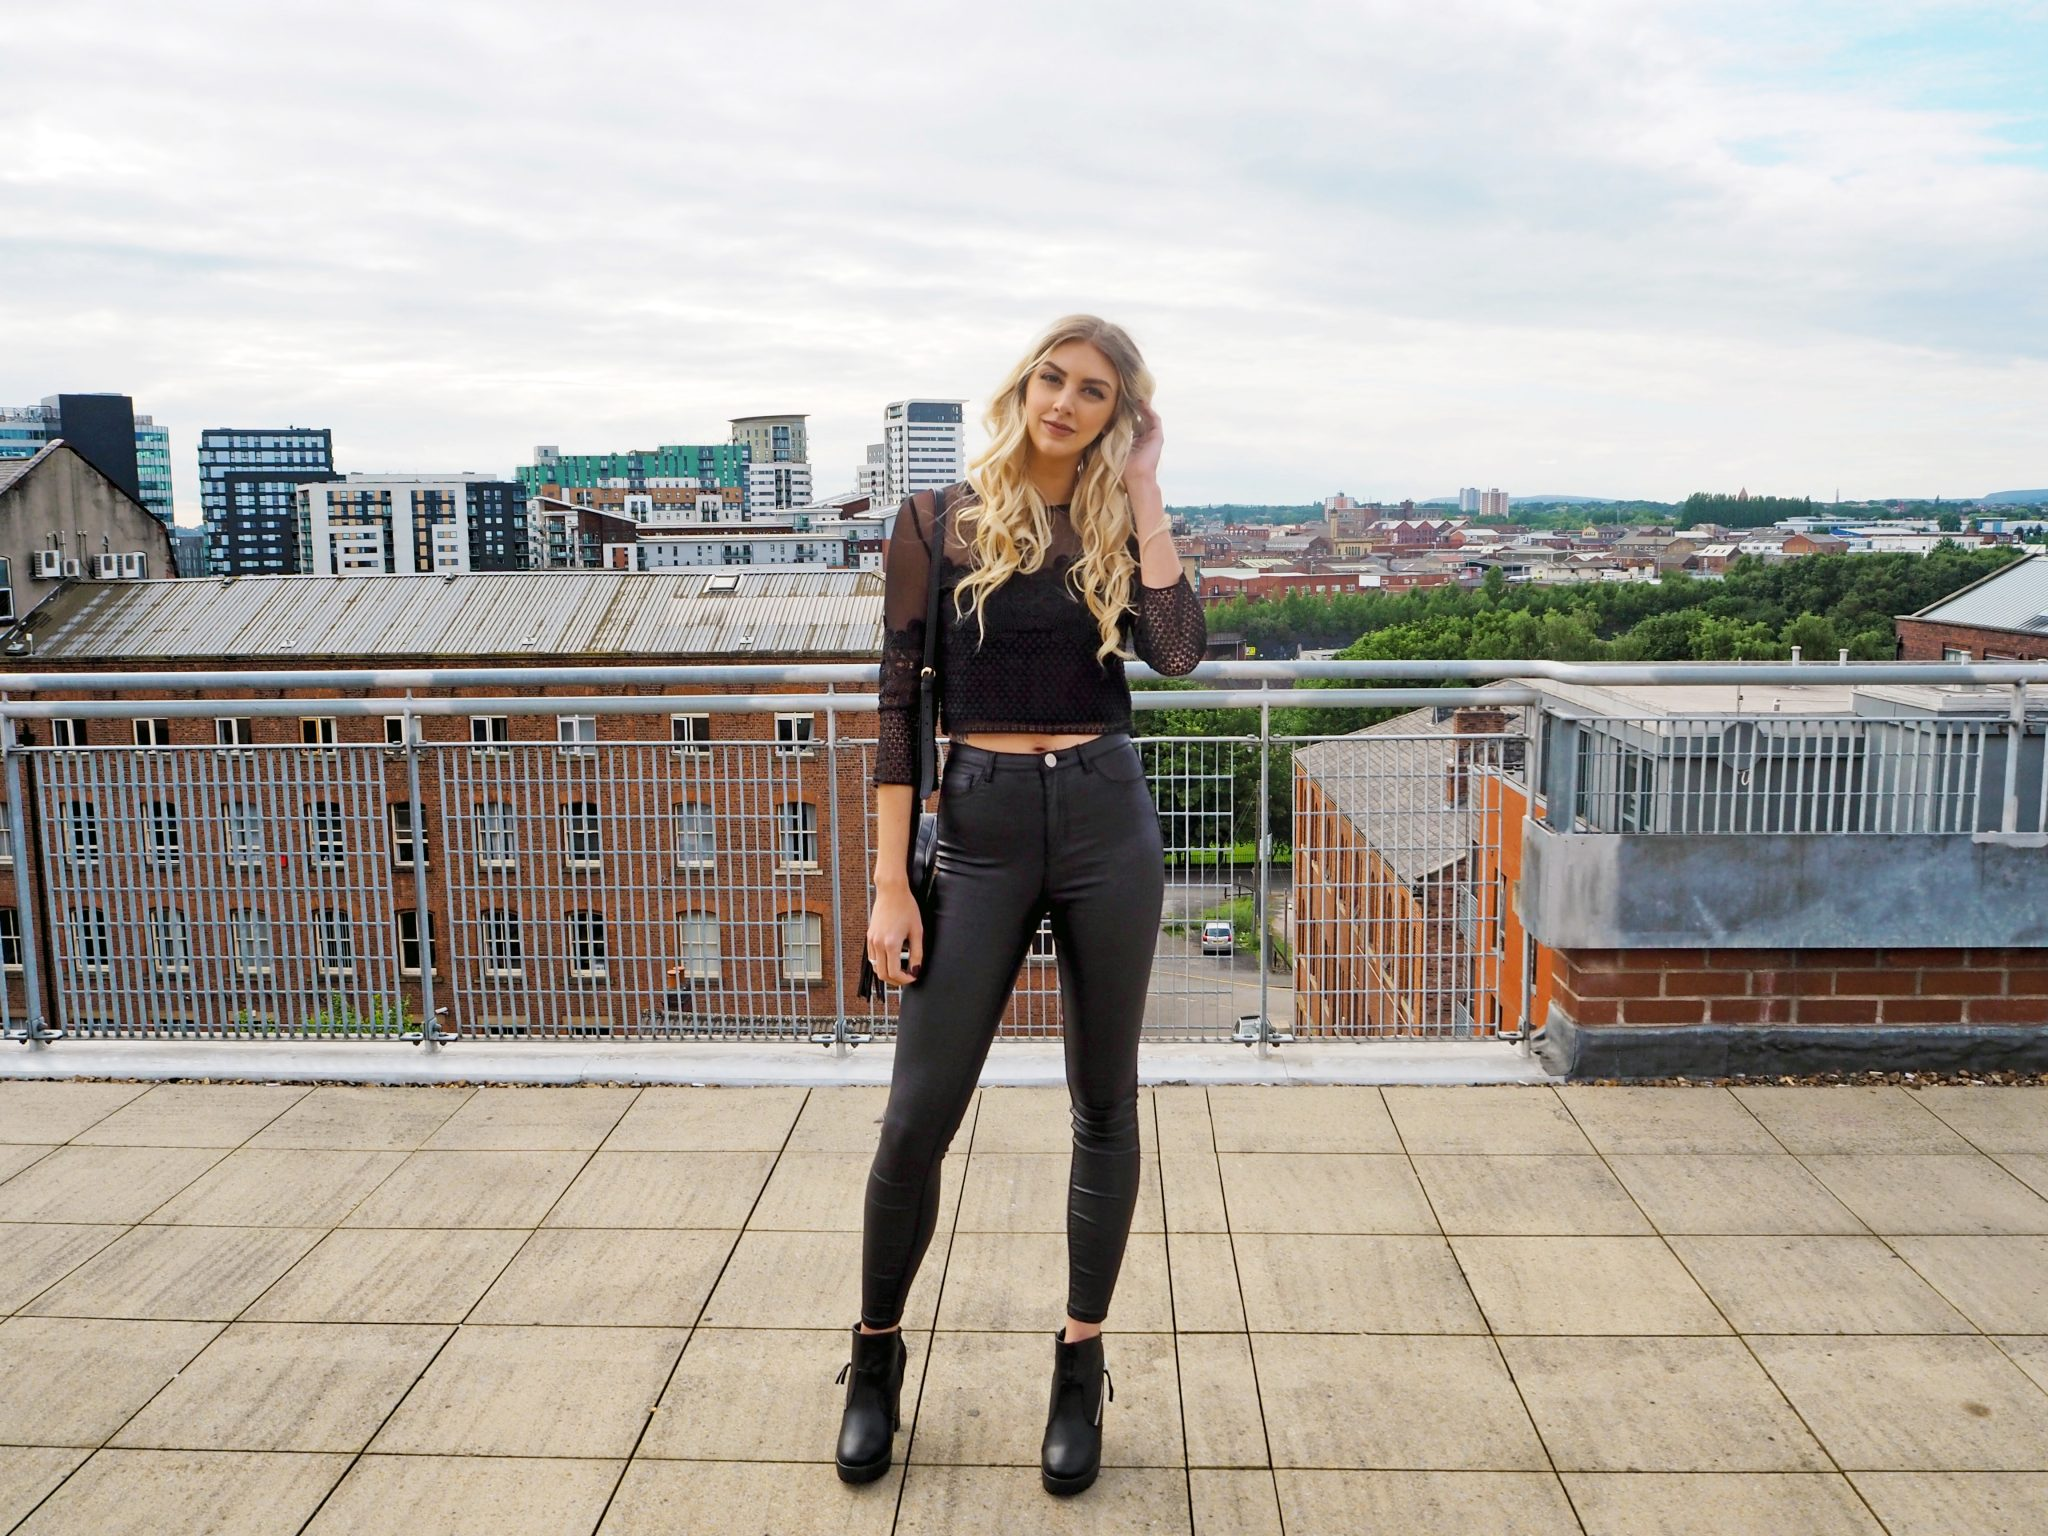 Laura Kate Lucas - Manchester Fashion, Fitness and Lifestyle Blogger | Outfit Post - Black Faux Leather Jeans, Heeled Biker Boots and Lace Crop Top